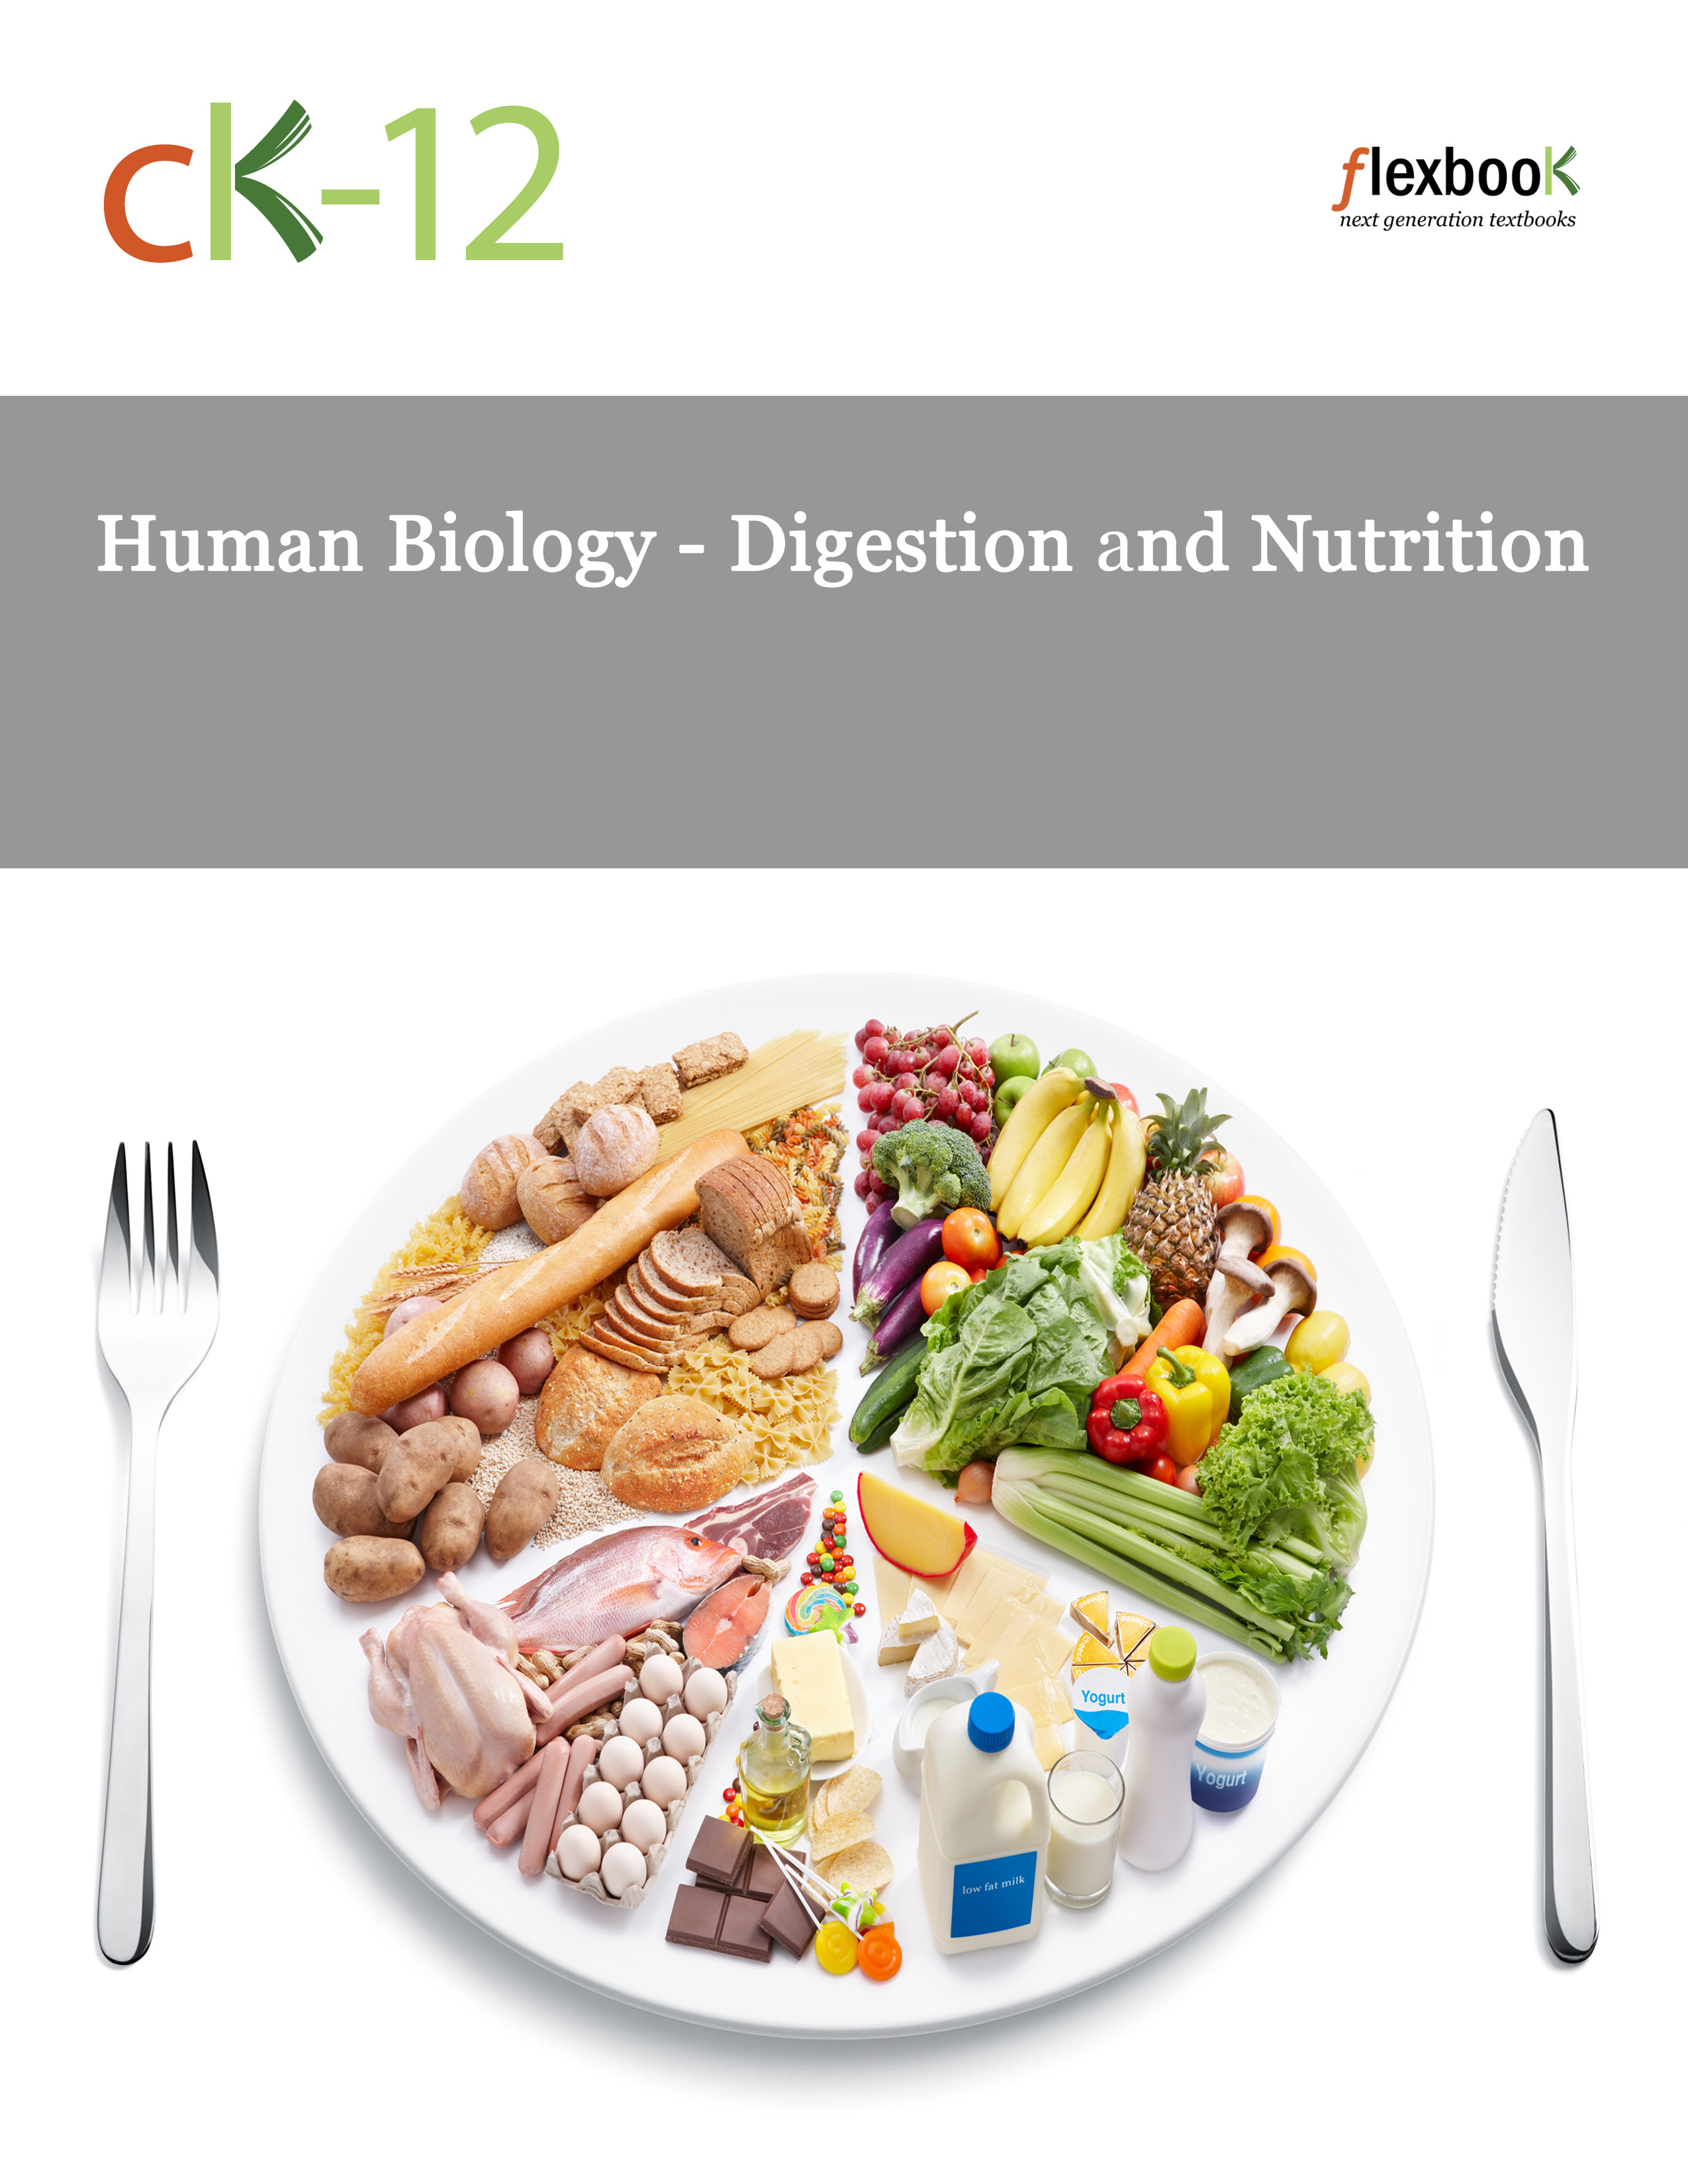 Human Biology - Digestion and Nutrition | CK-12 Foundation